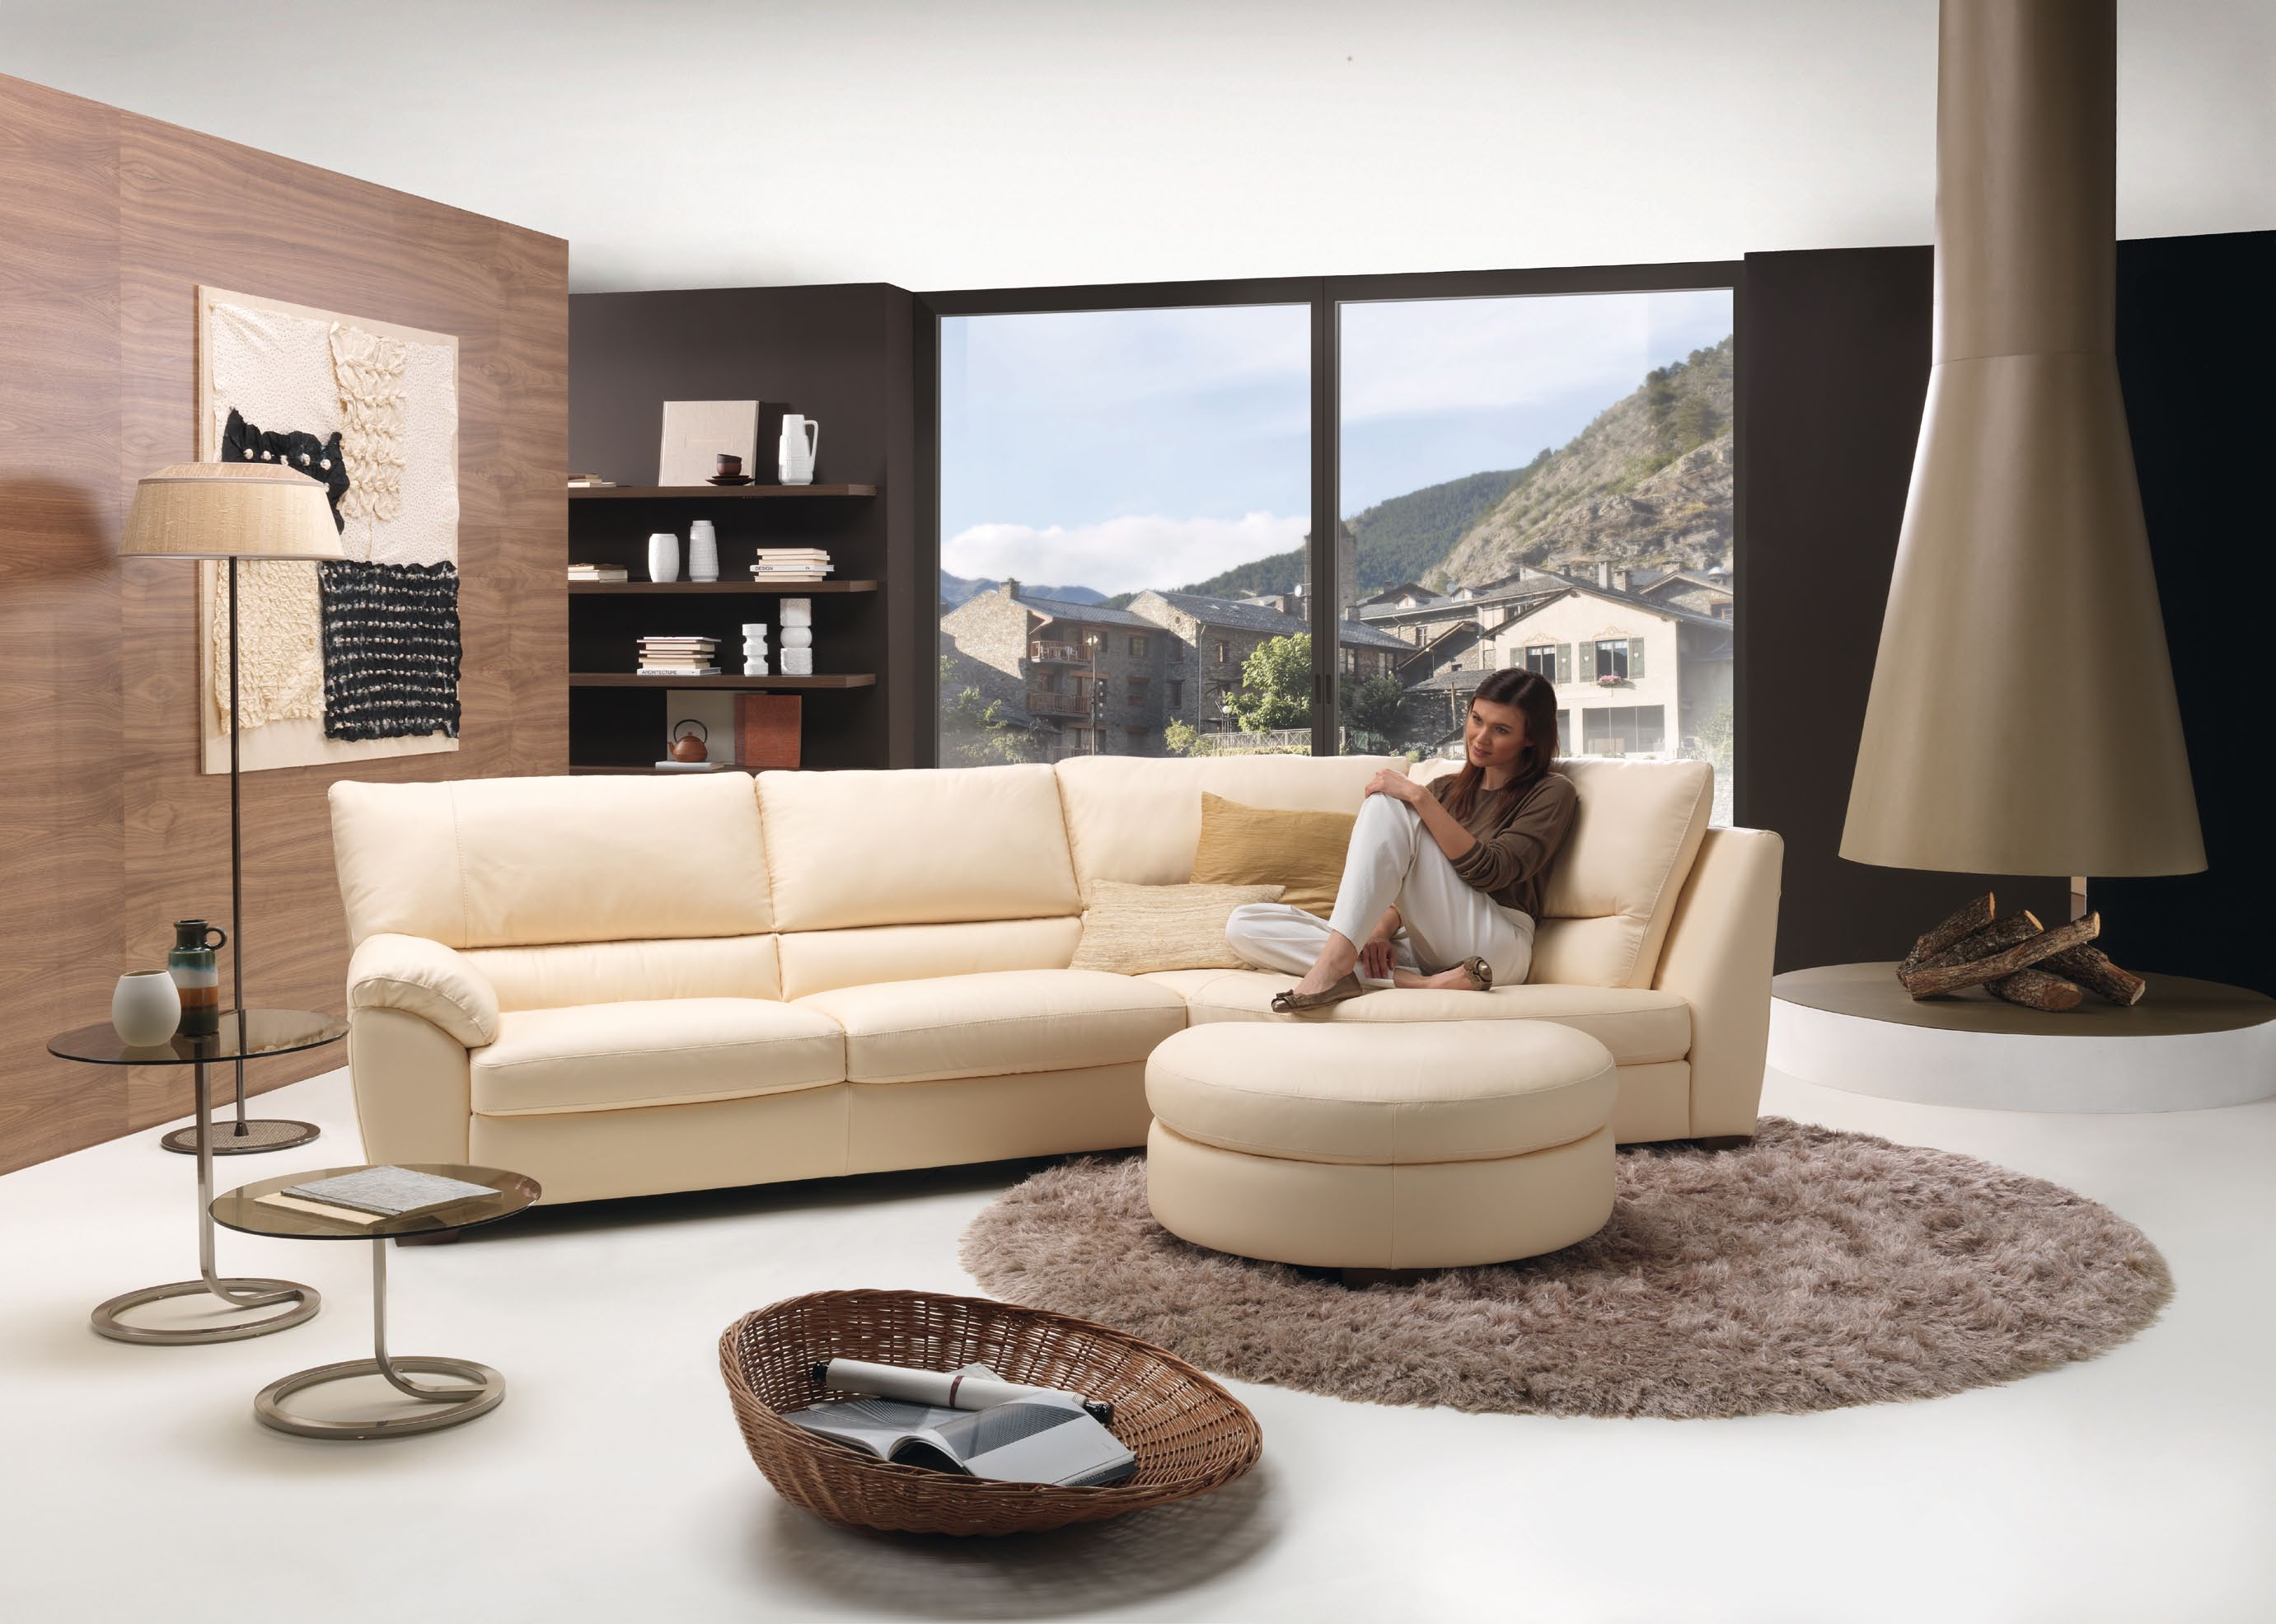 Outstanding Living Room with Sectional Sofa 2762 x 1971 · 403 kB · jpeg